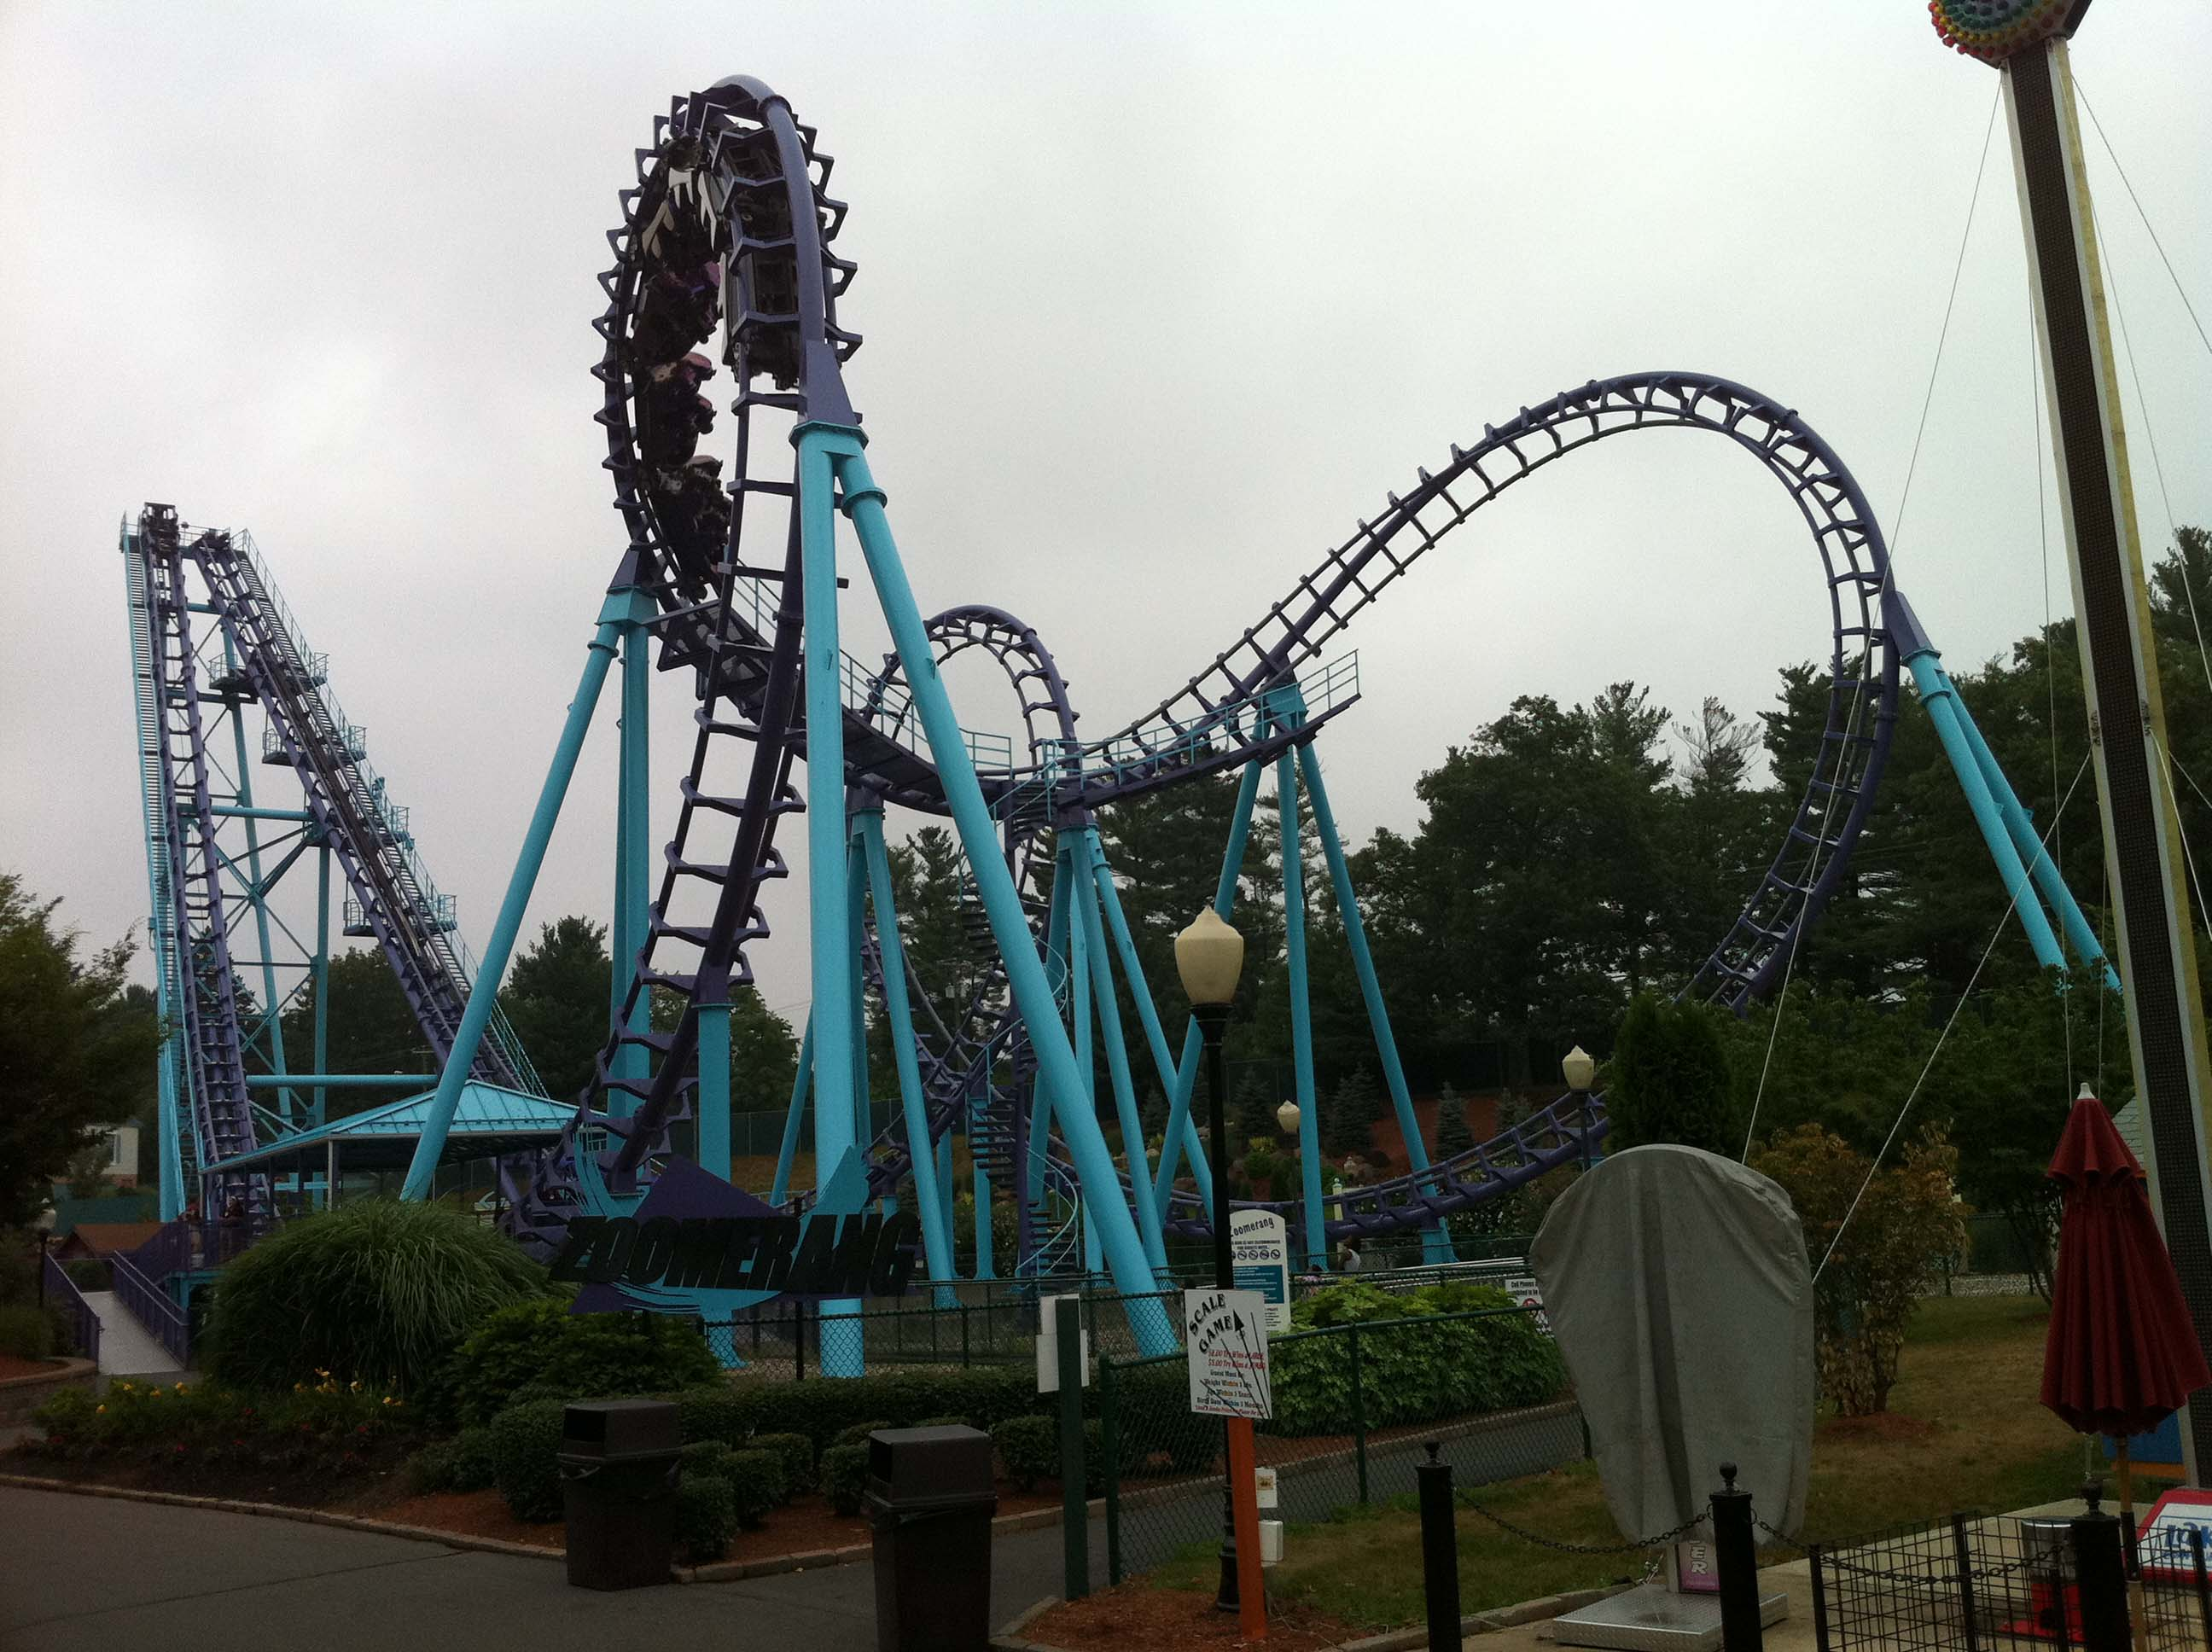 lake compounce photos videos reviews information